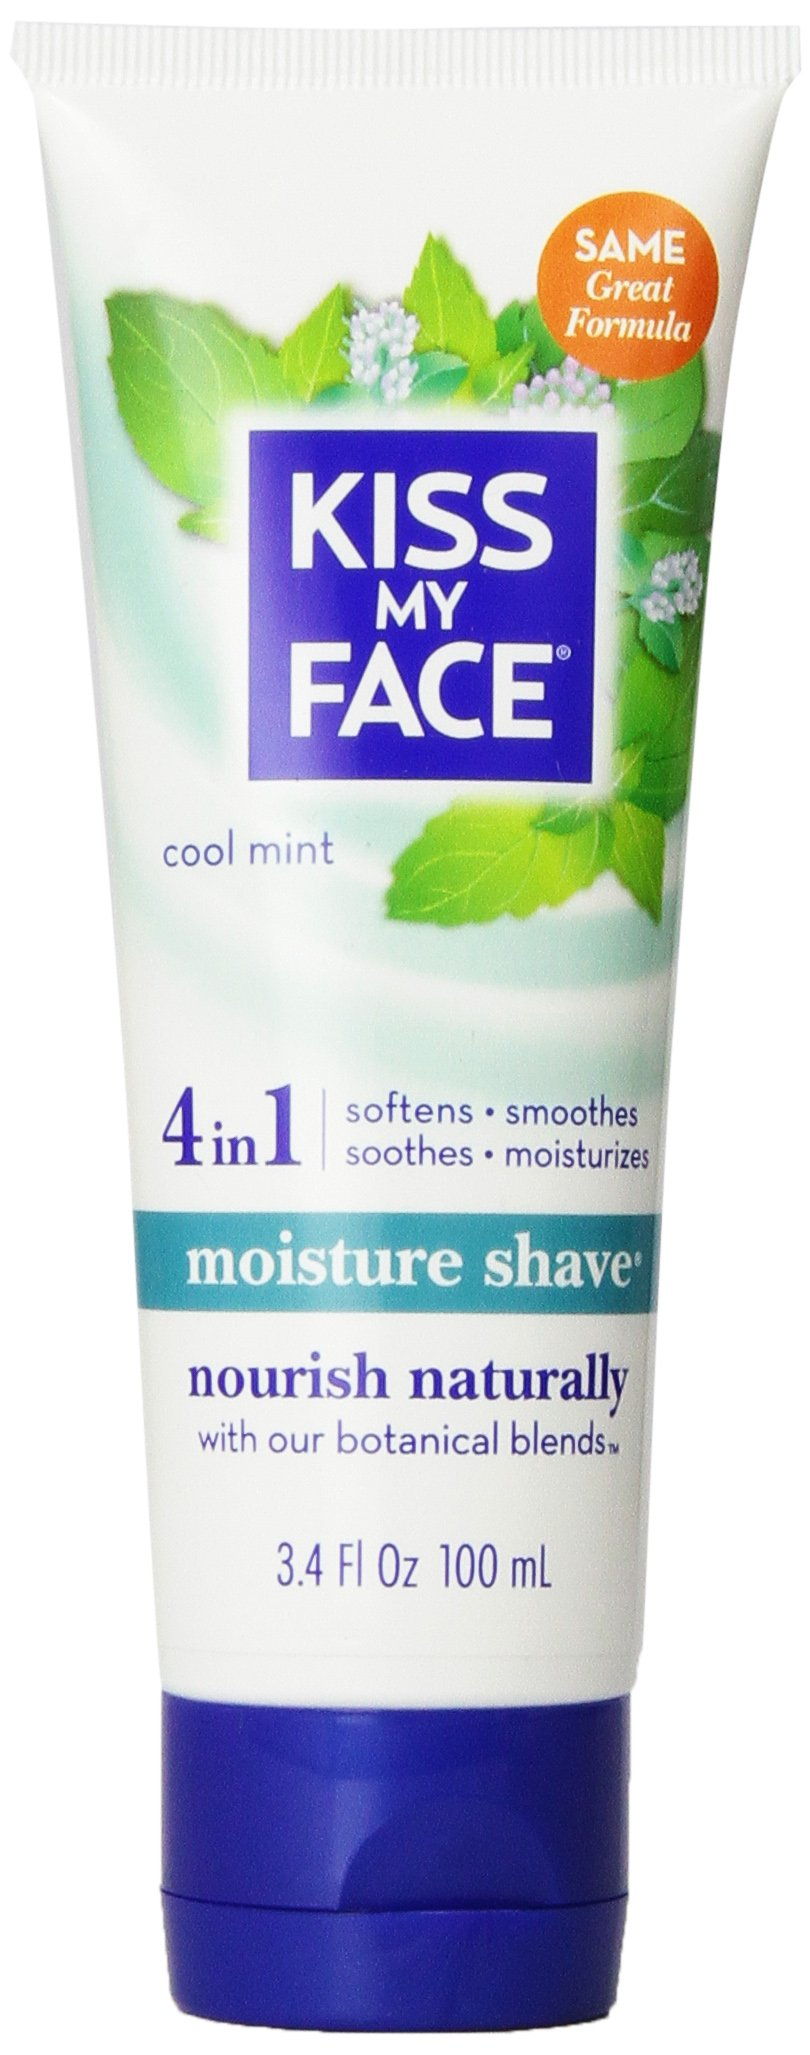 Kiss My Face Moisture Shave Shaving Cream, Cool Mint Shaving Soap, 3.4 Ounce Travel Size